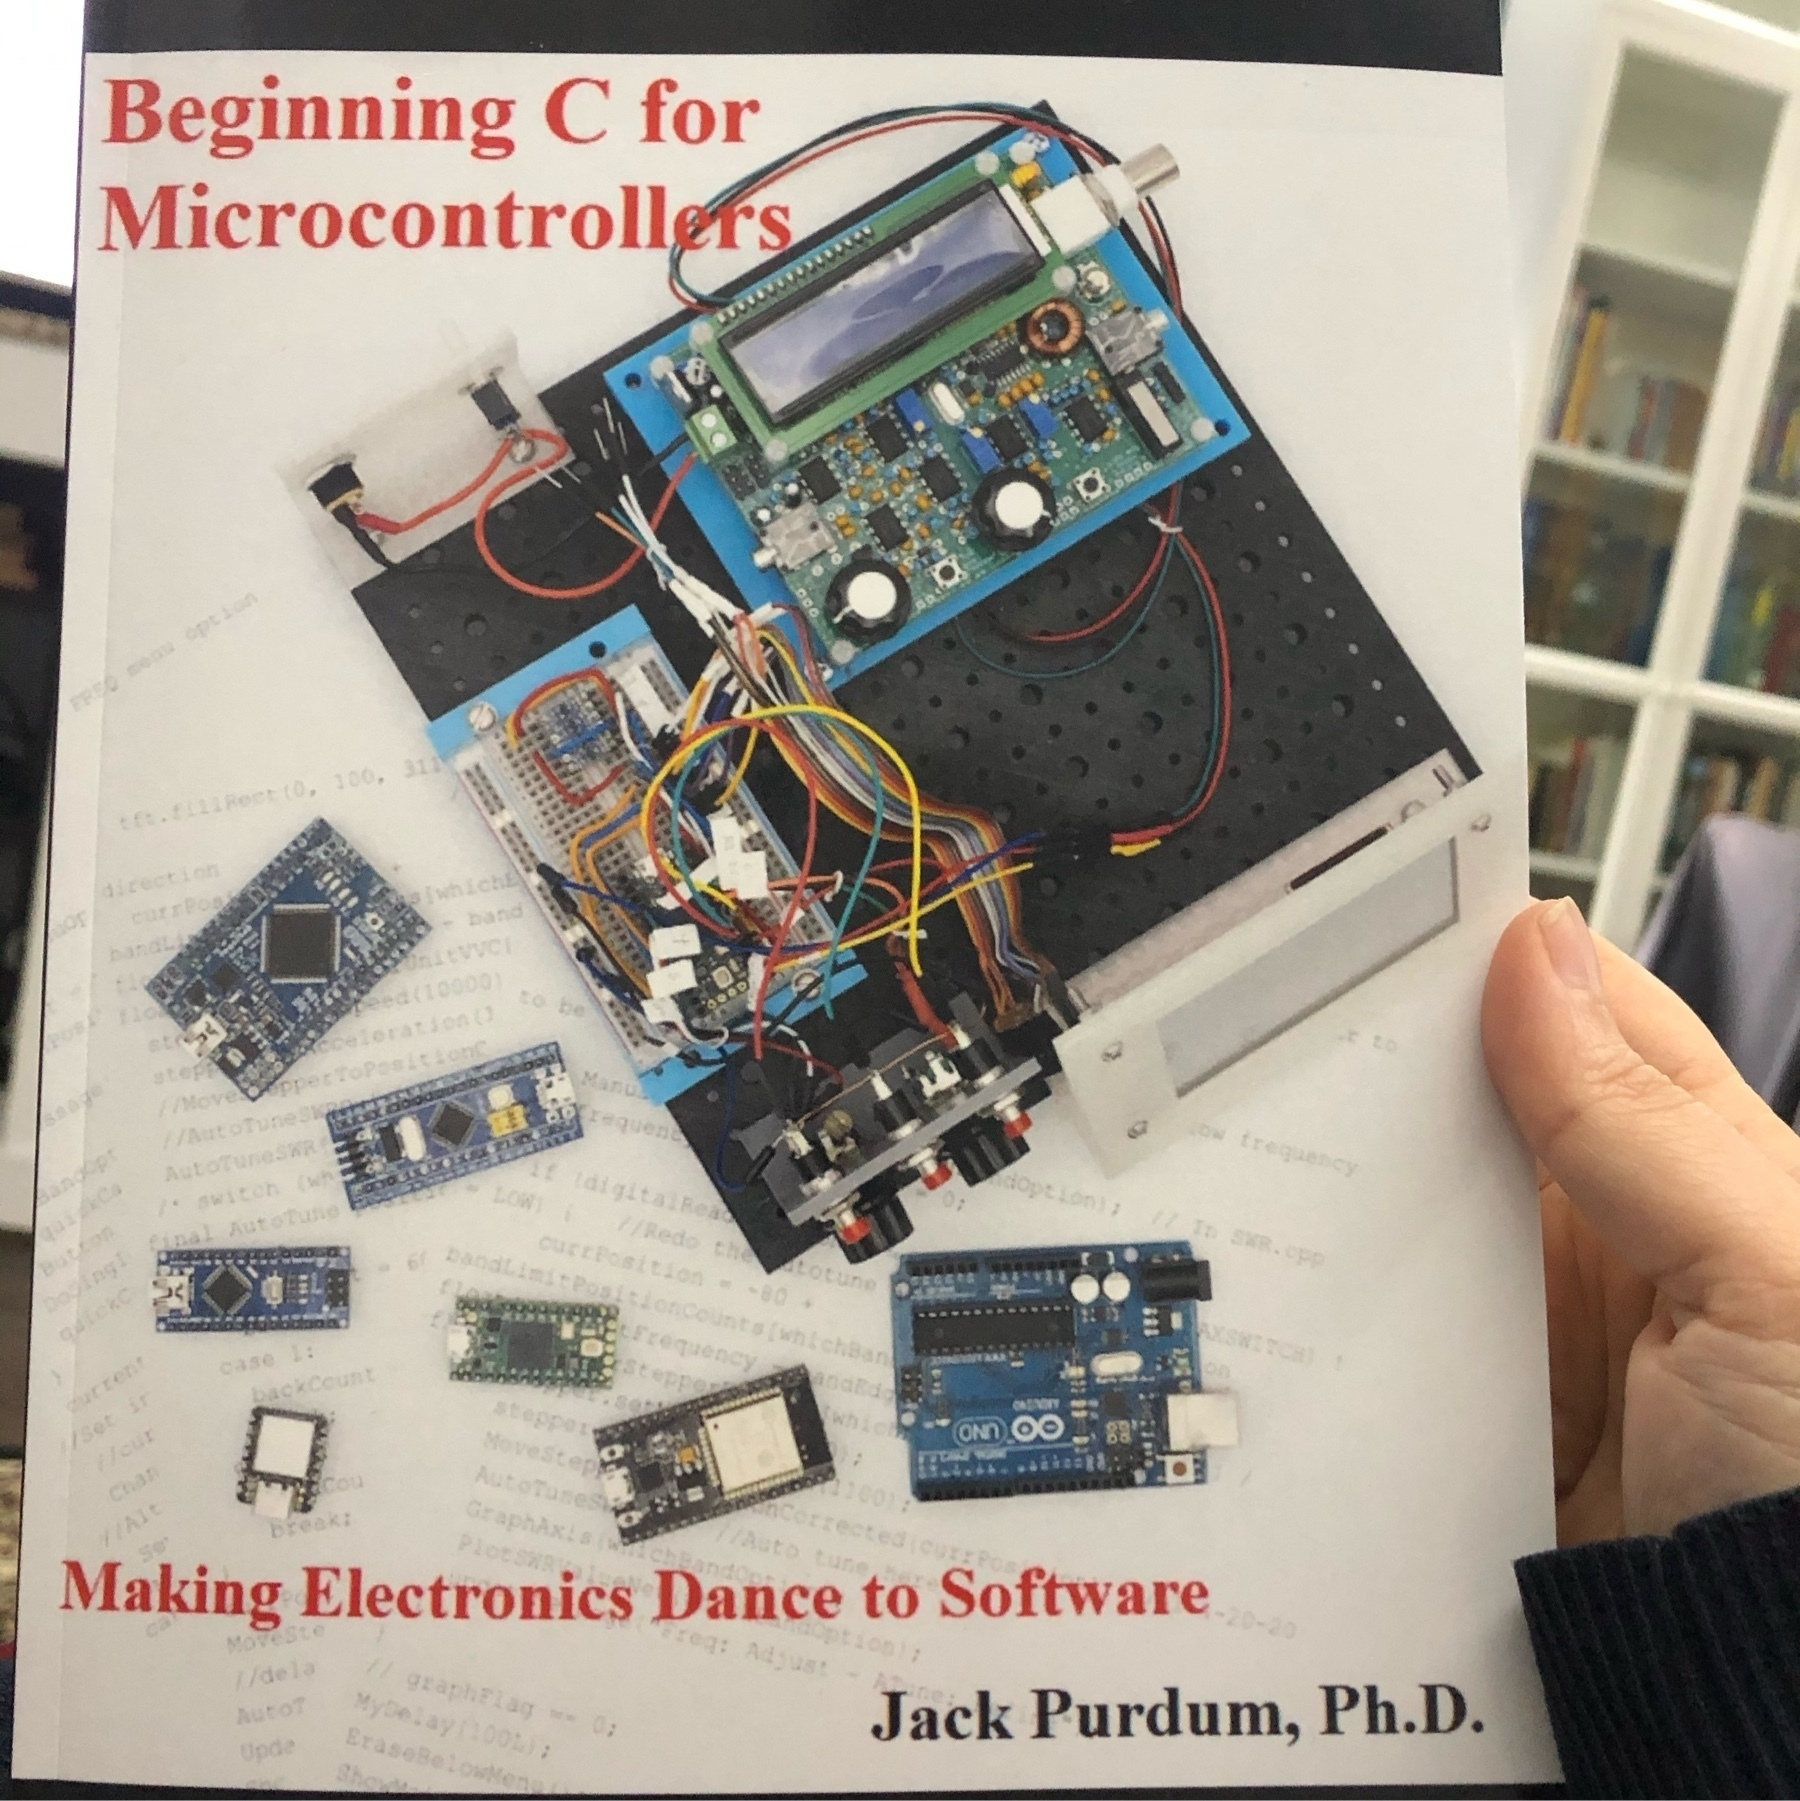 A book: C for Microcontrollers